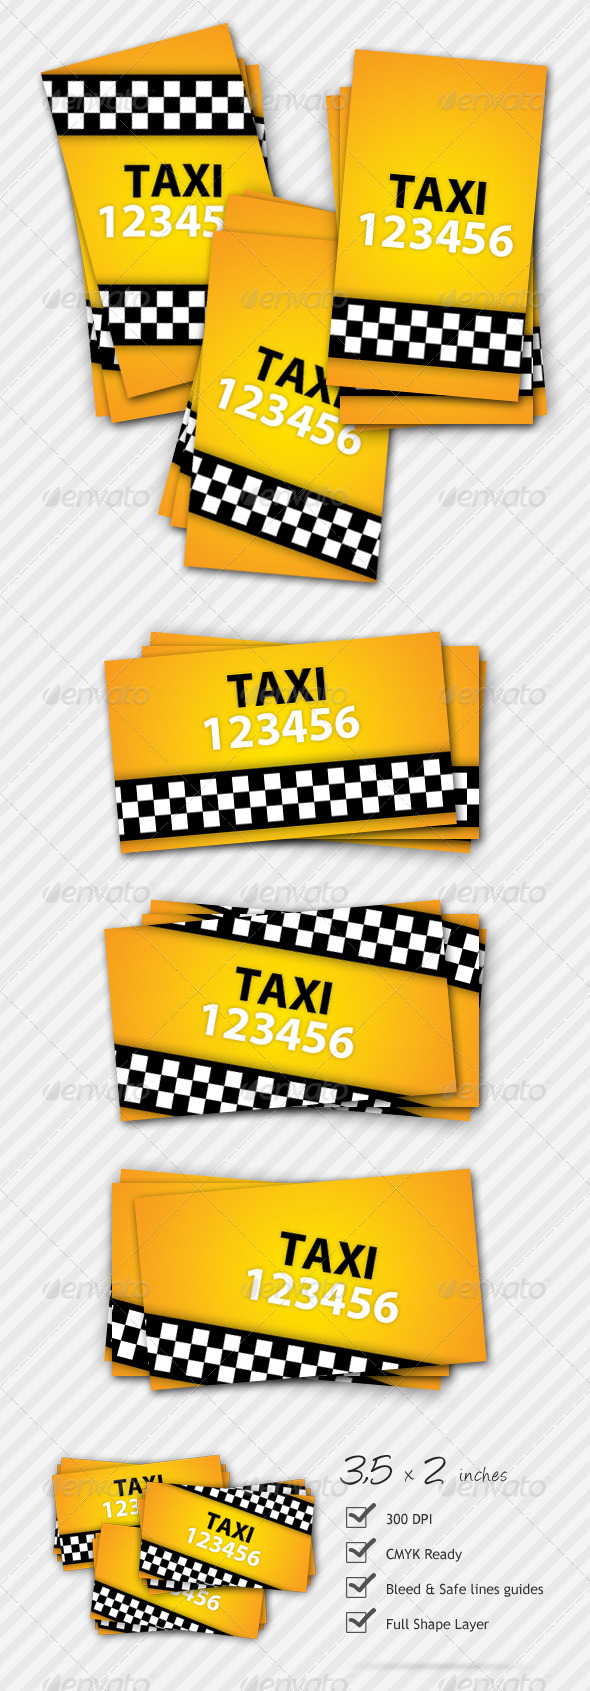 Premium Taxi Business Card - Industry Specific Business Cards